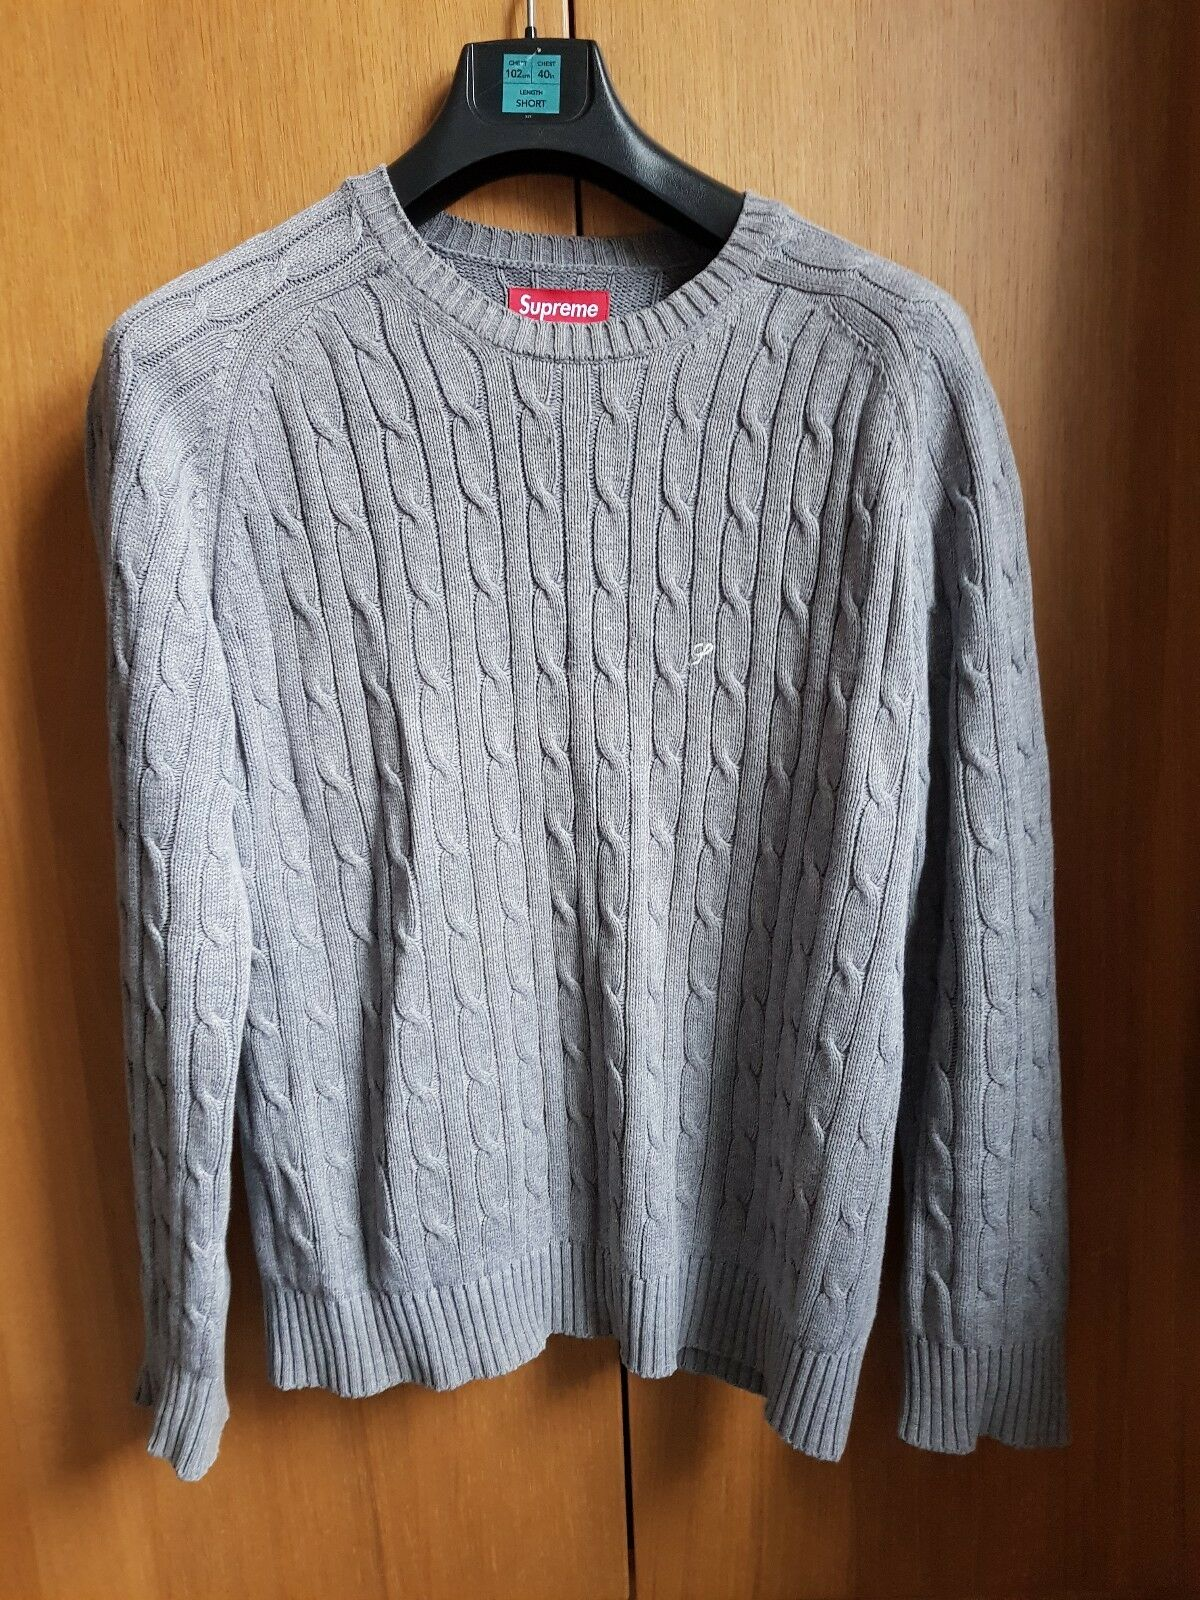 Supreme Cable Knit Jumper Größe Medium